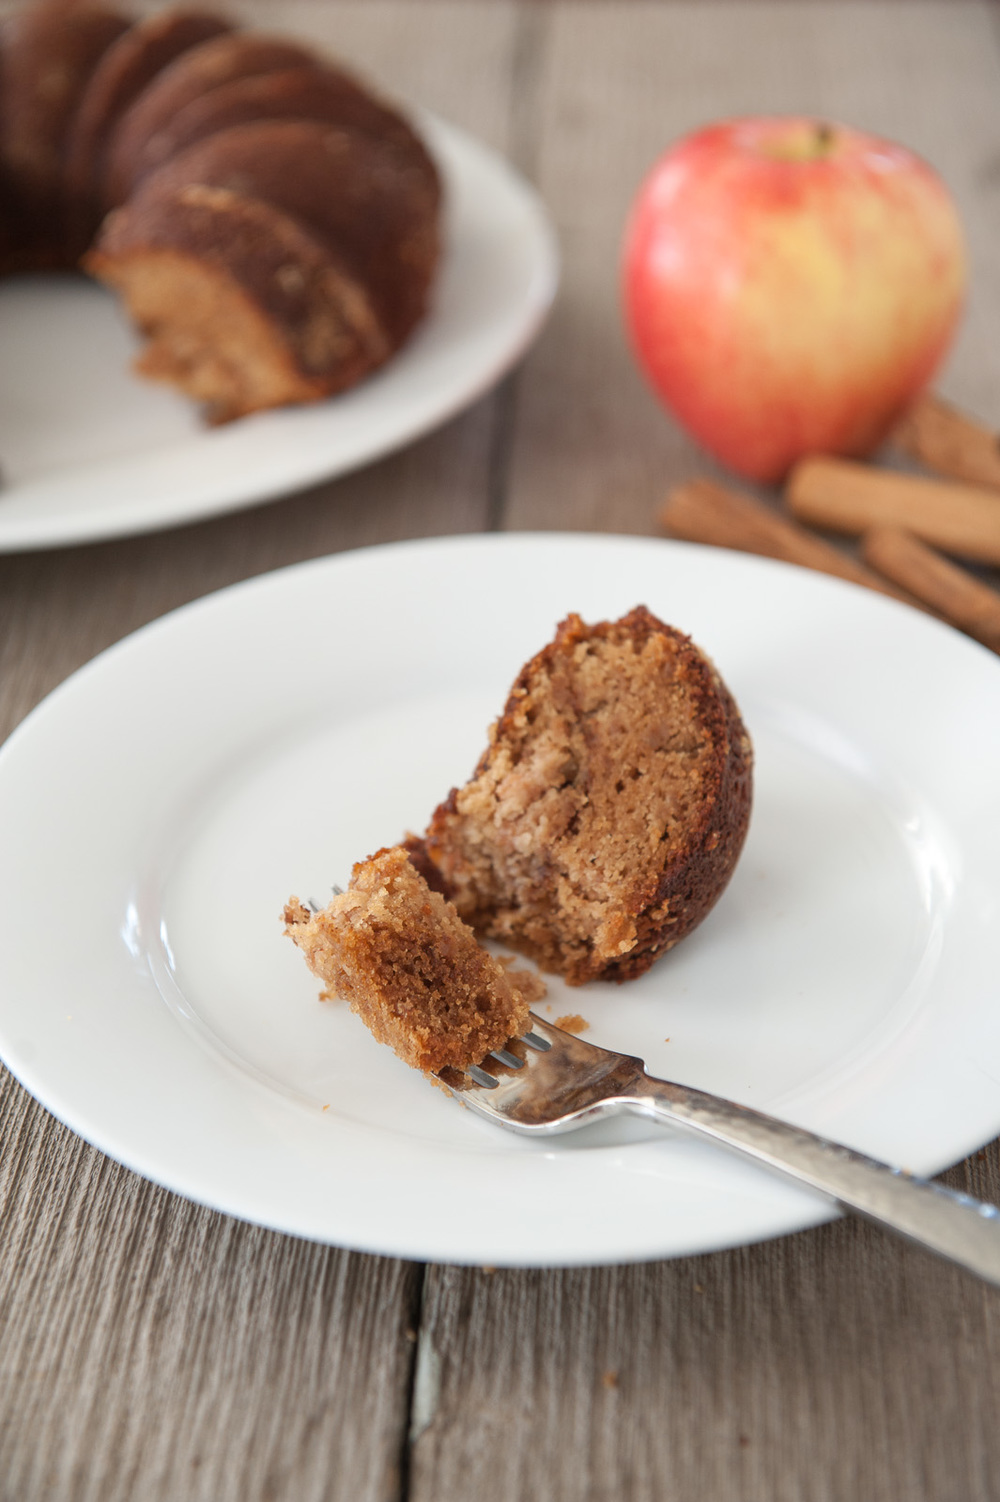 Apple Cinnamon Cake # 2 by Nourished App